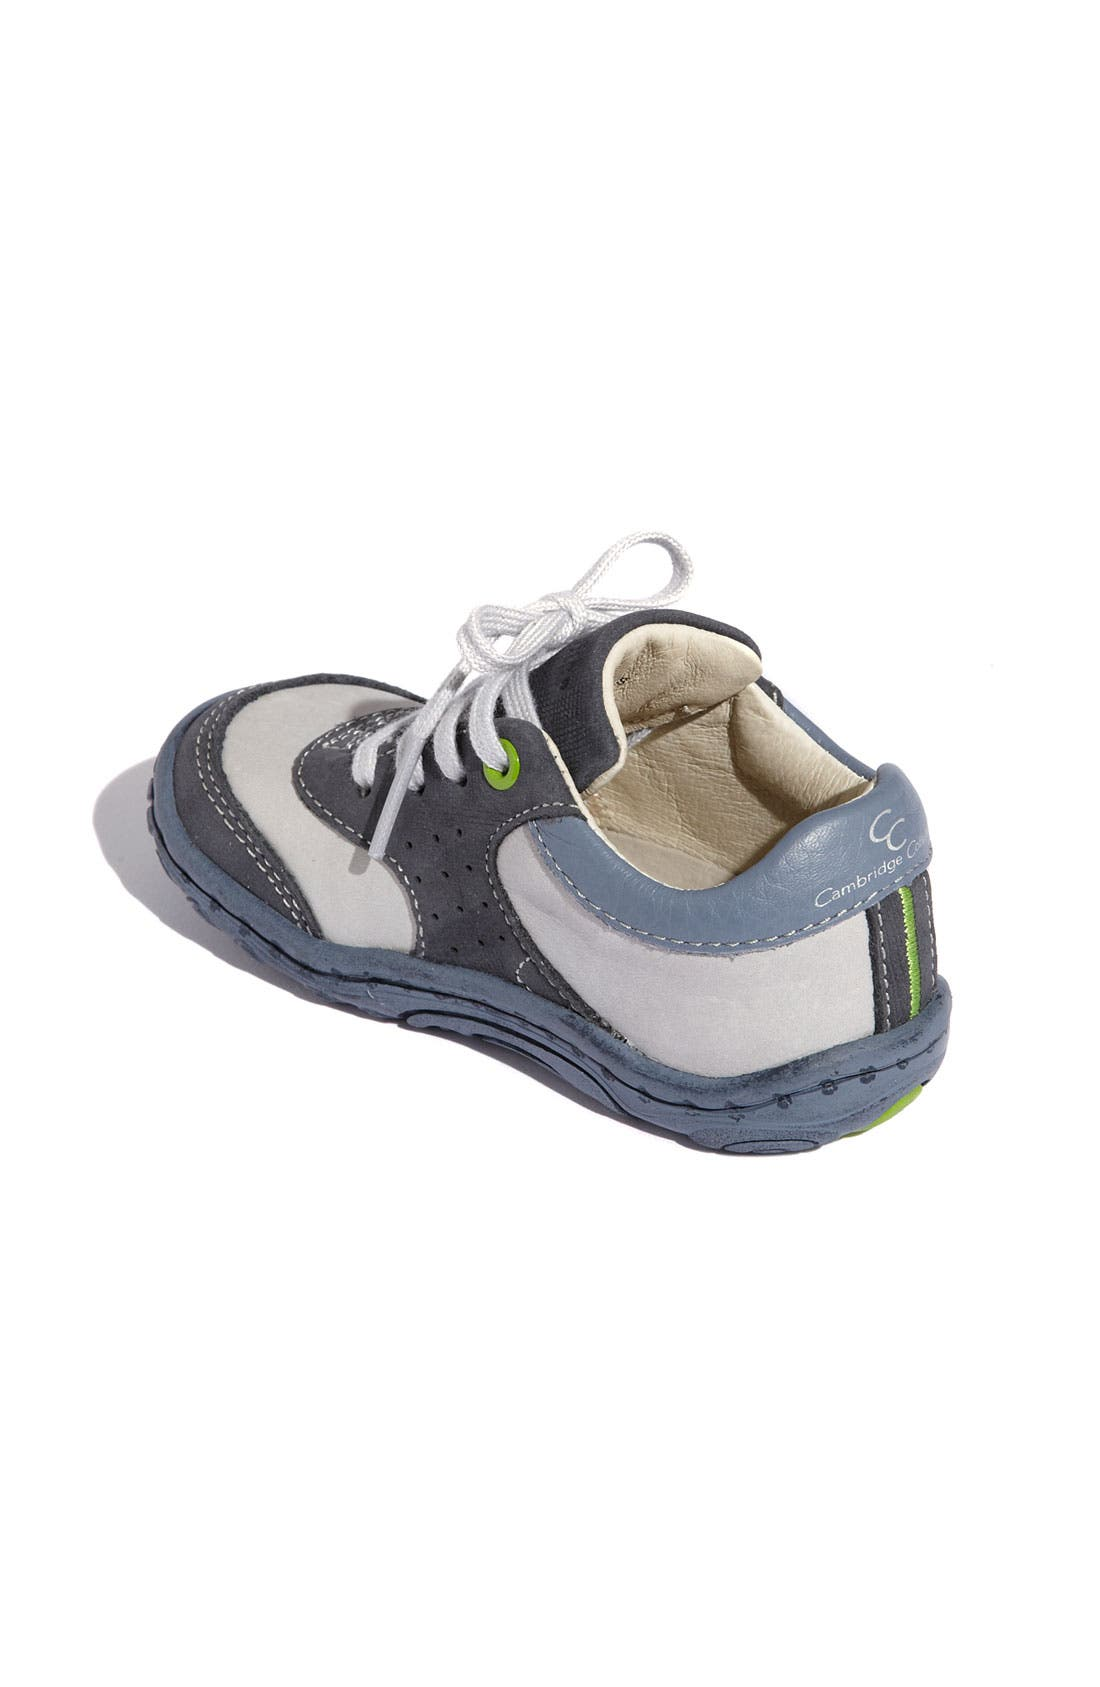 Alternate Image 2  - Stride Rite 'Charles' Sneaker (Baby, Walker & Toddler)